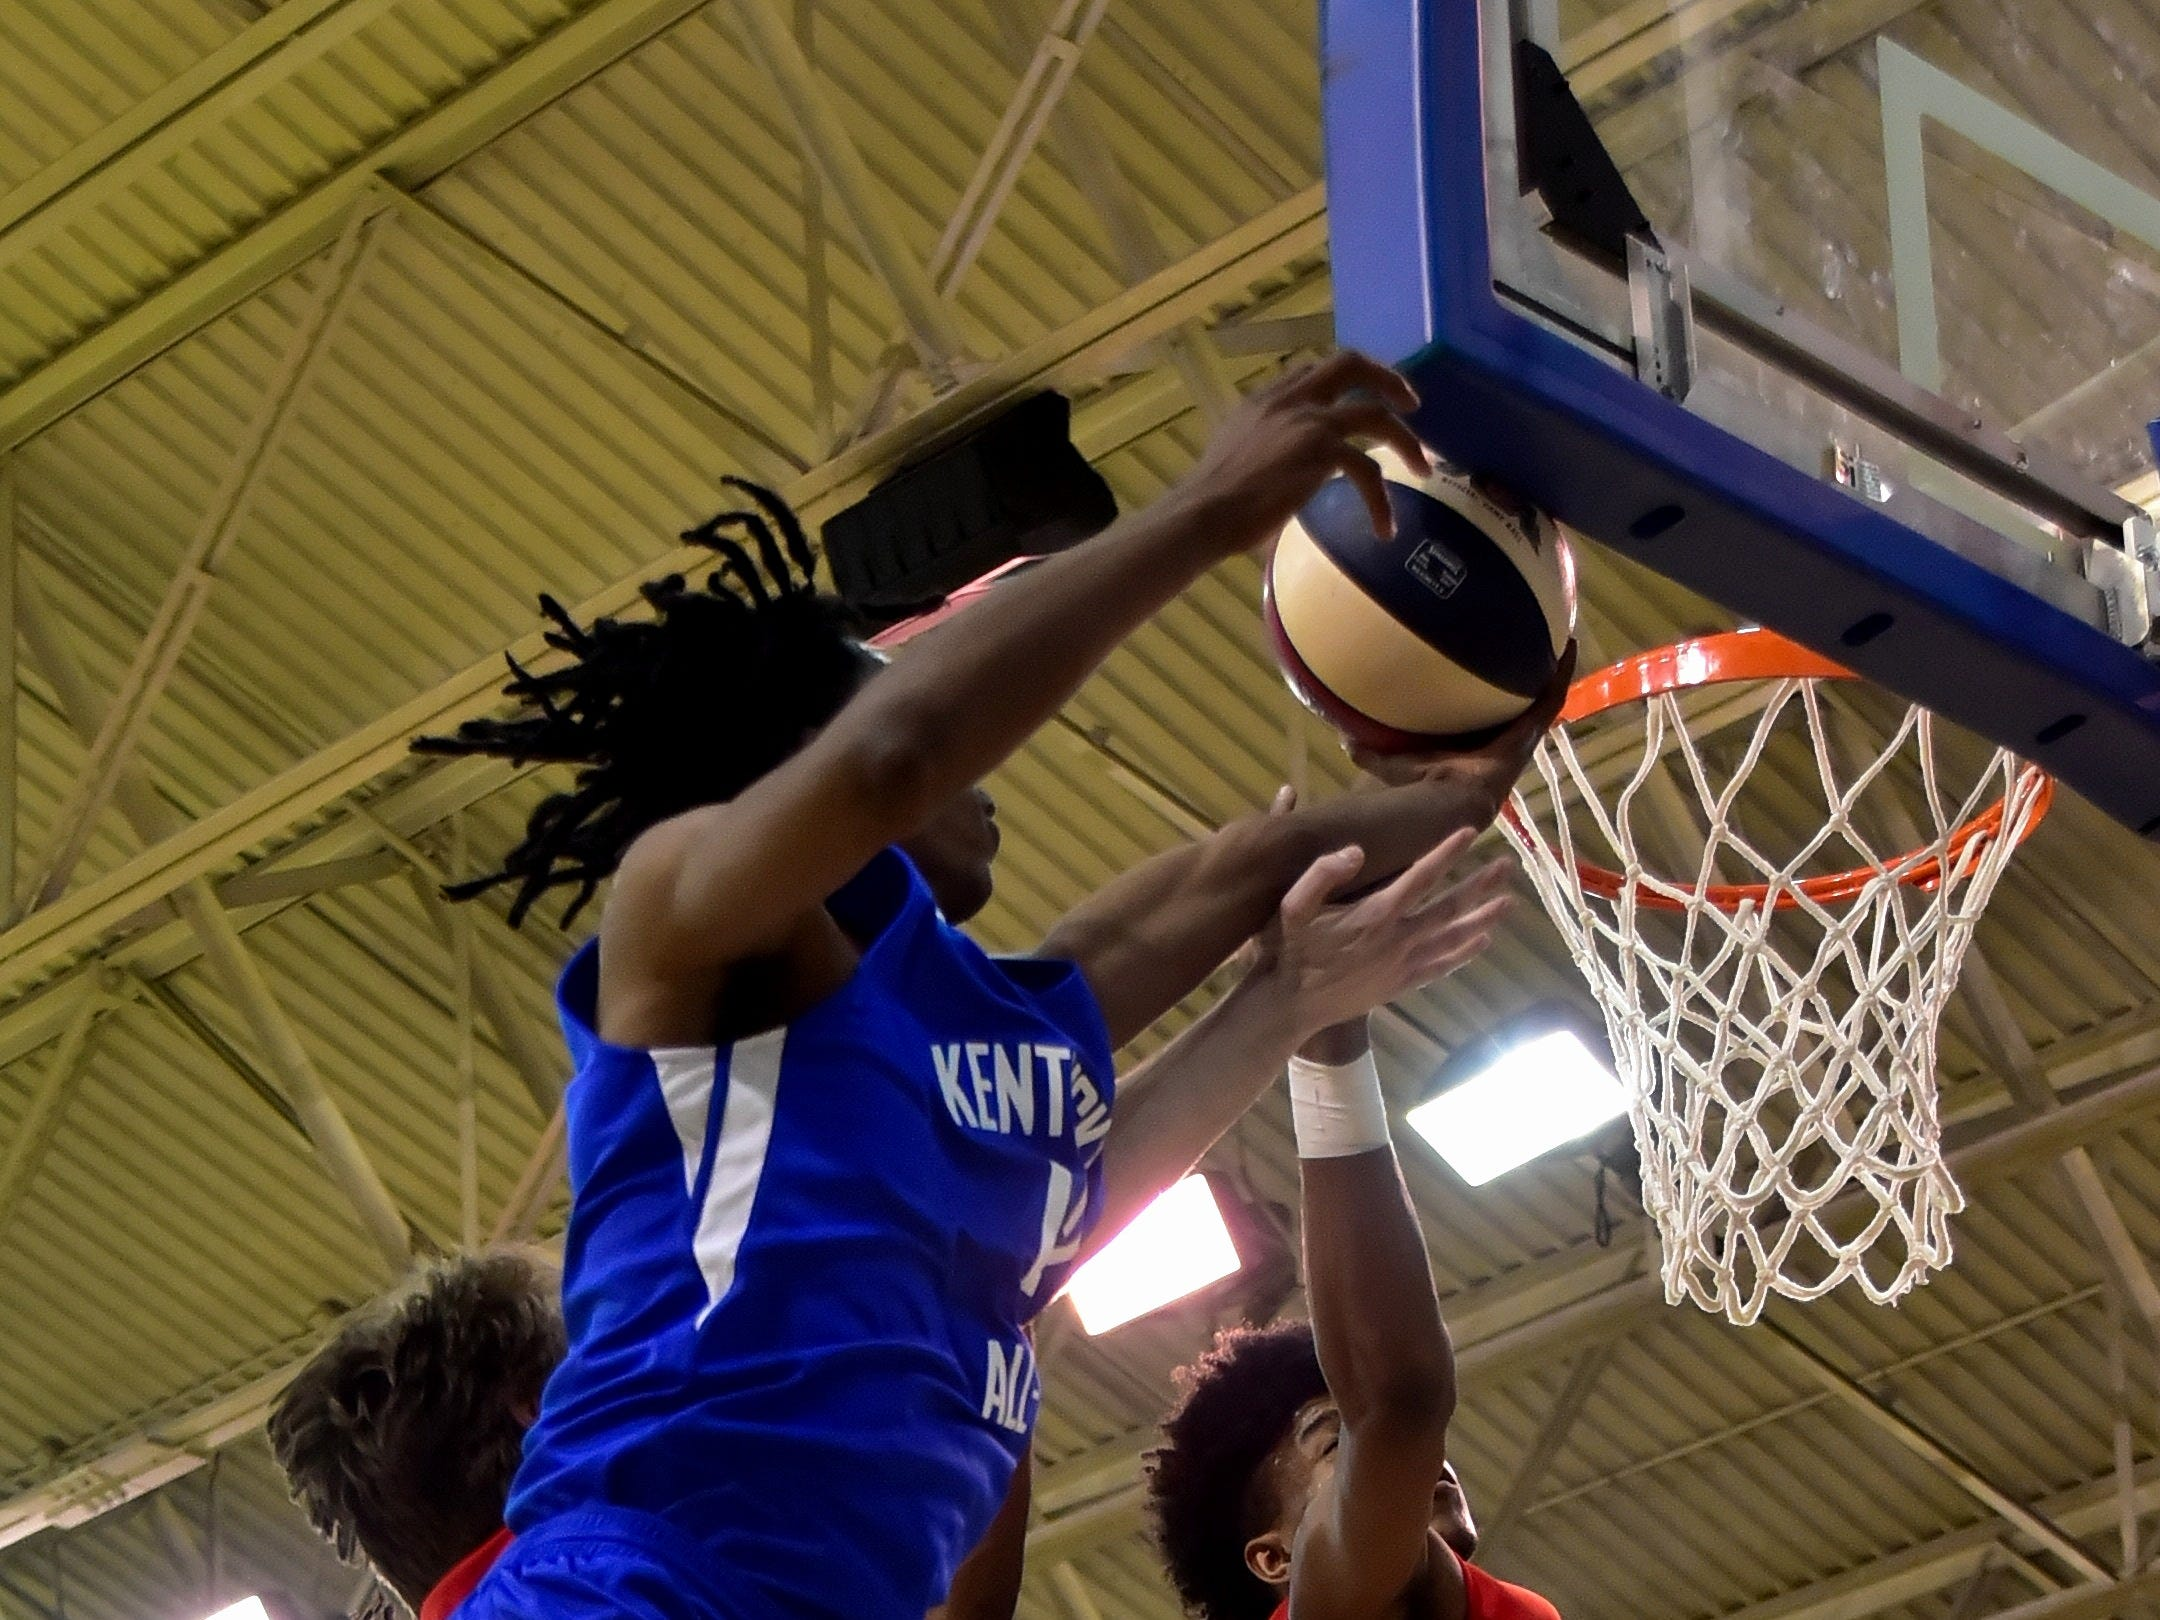 Dieonte Miles of Walton-Verona pulls down a rebound for the Kentucky boys team at the 28th Annual Ohio-Kentucky All Star Games played at Thomas More University, April 13, 2019